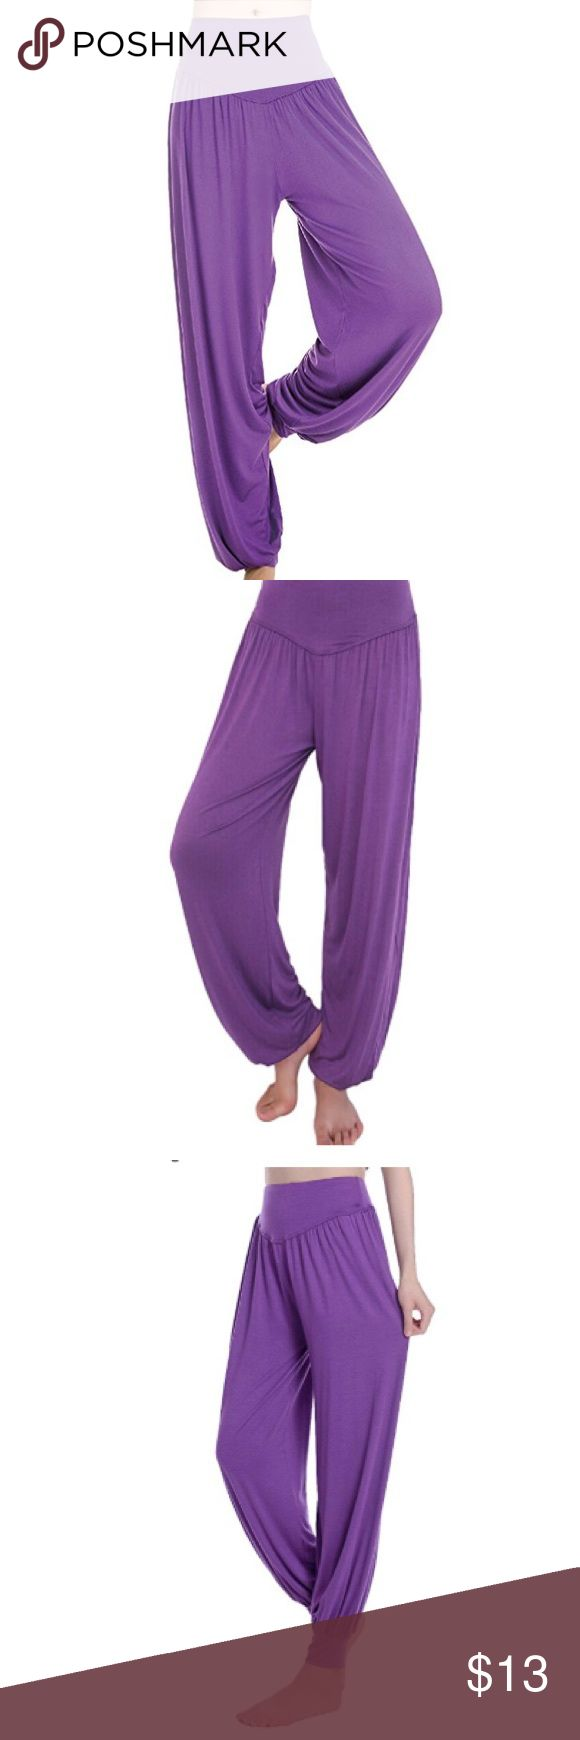 "Harem pants purple boho festival rave burning man Awesome purple Aladdin pants! Very Soft cotton and spandex , super comfy great for yoga, music festivals concerts raves and burning man ! 11"" waist lying flat 25-30"" waist, elastic waistband. 36"" long and 24"" inseam. Can wear long or bunched at the knee. Tags: mc hammer genie princess jasmine disney unif dollskill edc edm rave iheartraves boho hippie hippy bohemian tribal yoga meditation ocean moon spandex rave mi gente lip service rave ready…"